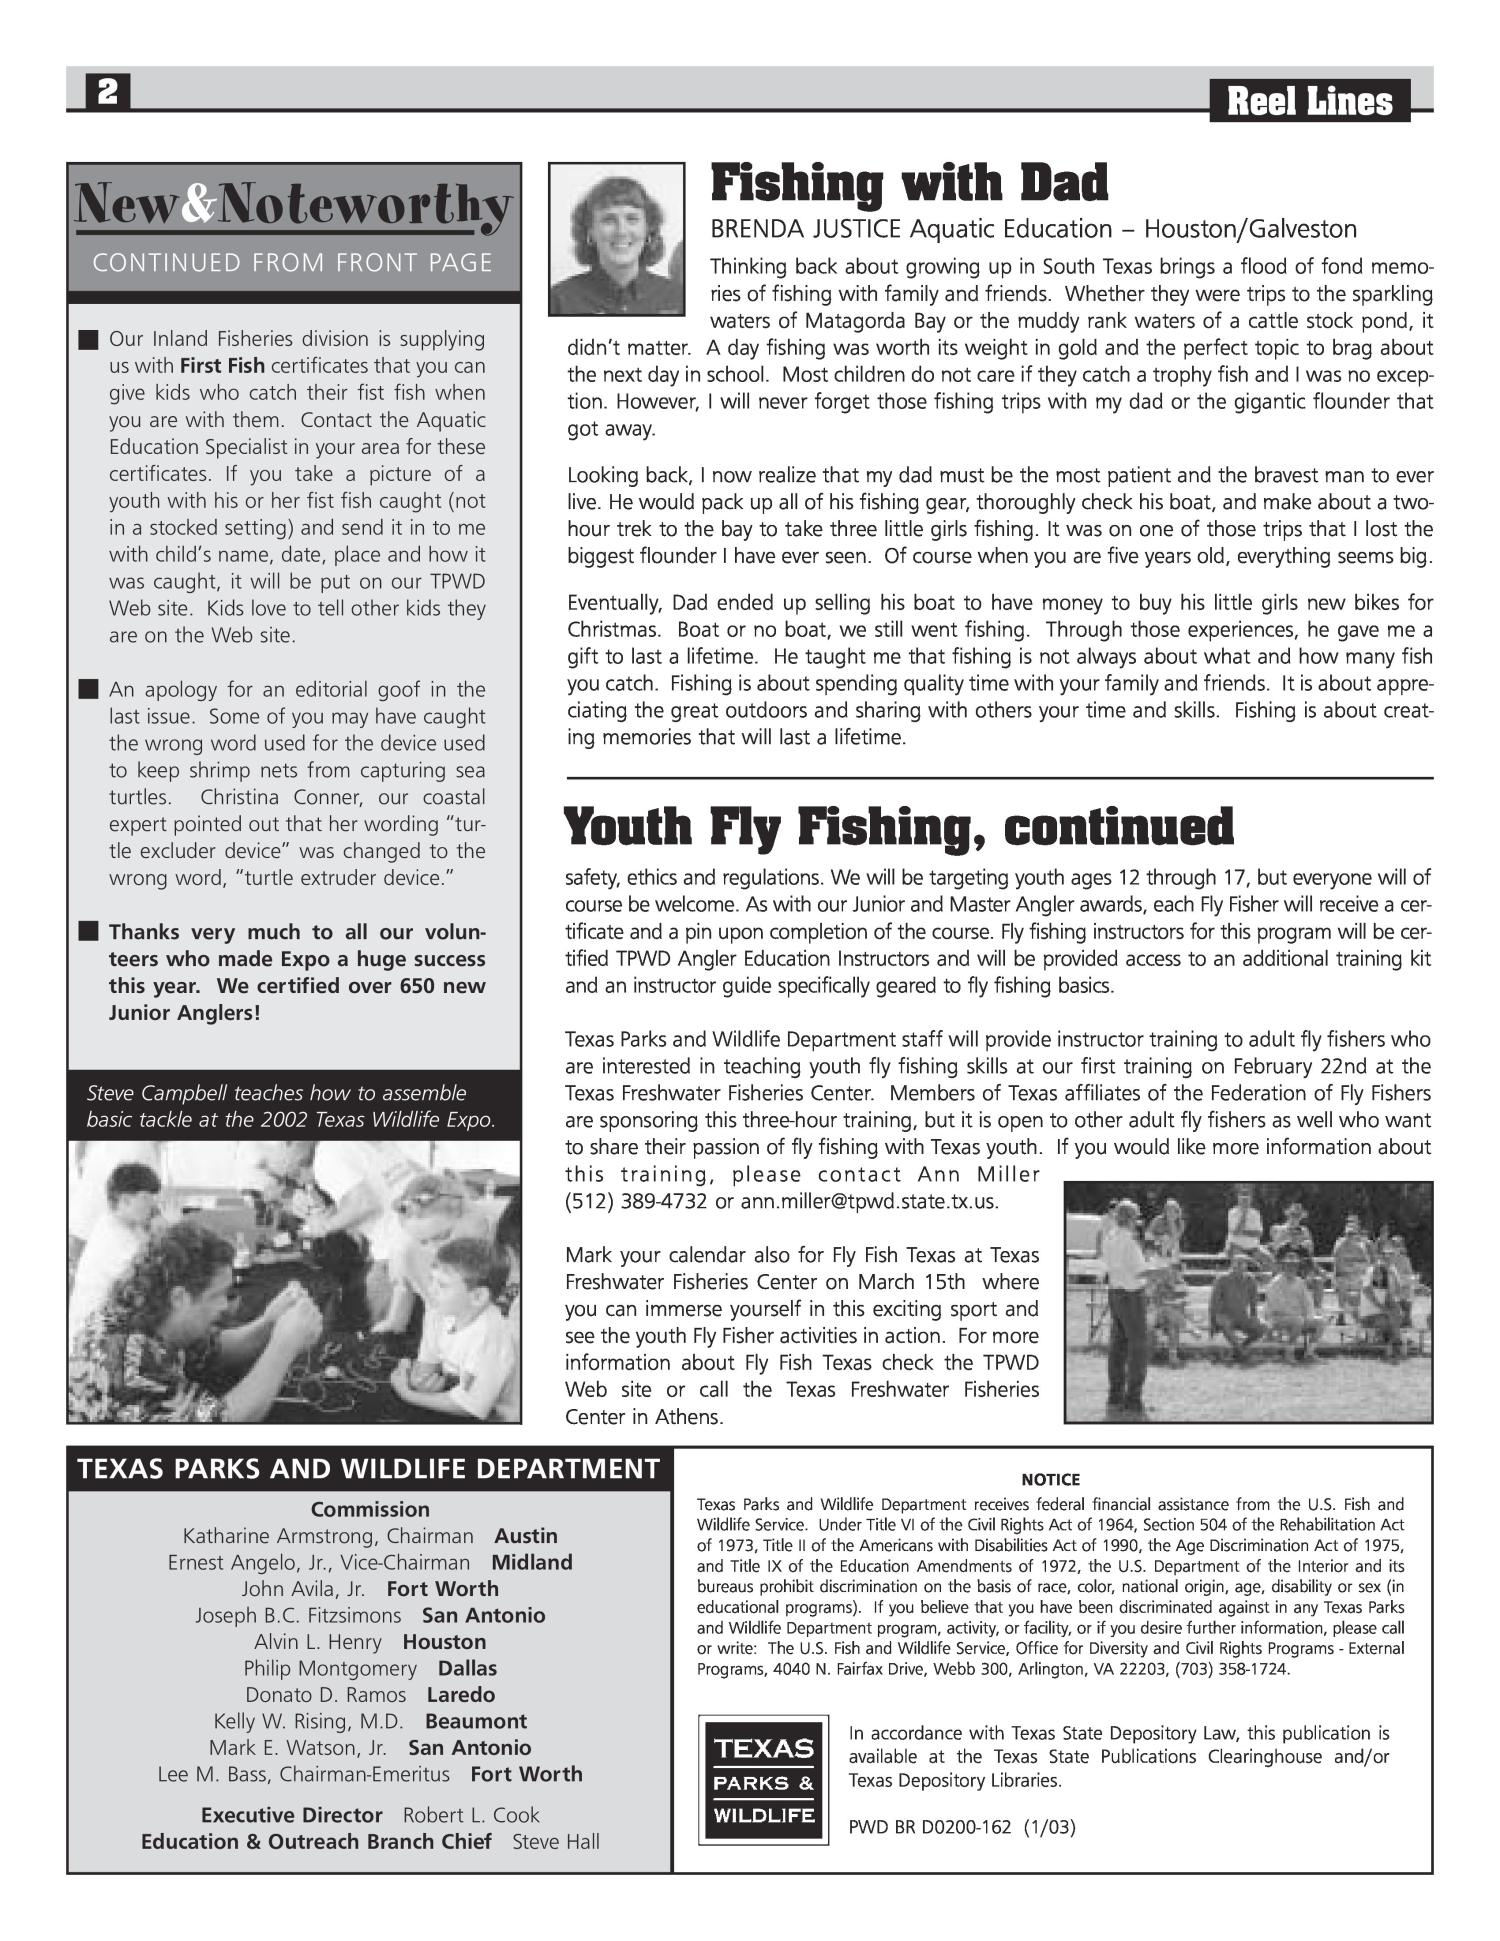 Reel Lines, Issue Number 13, January 2003                                                                                                      2